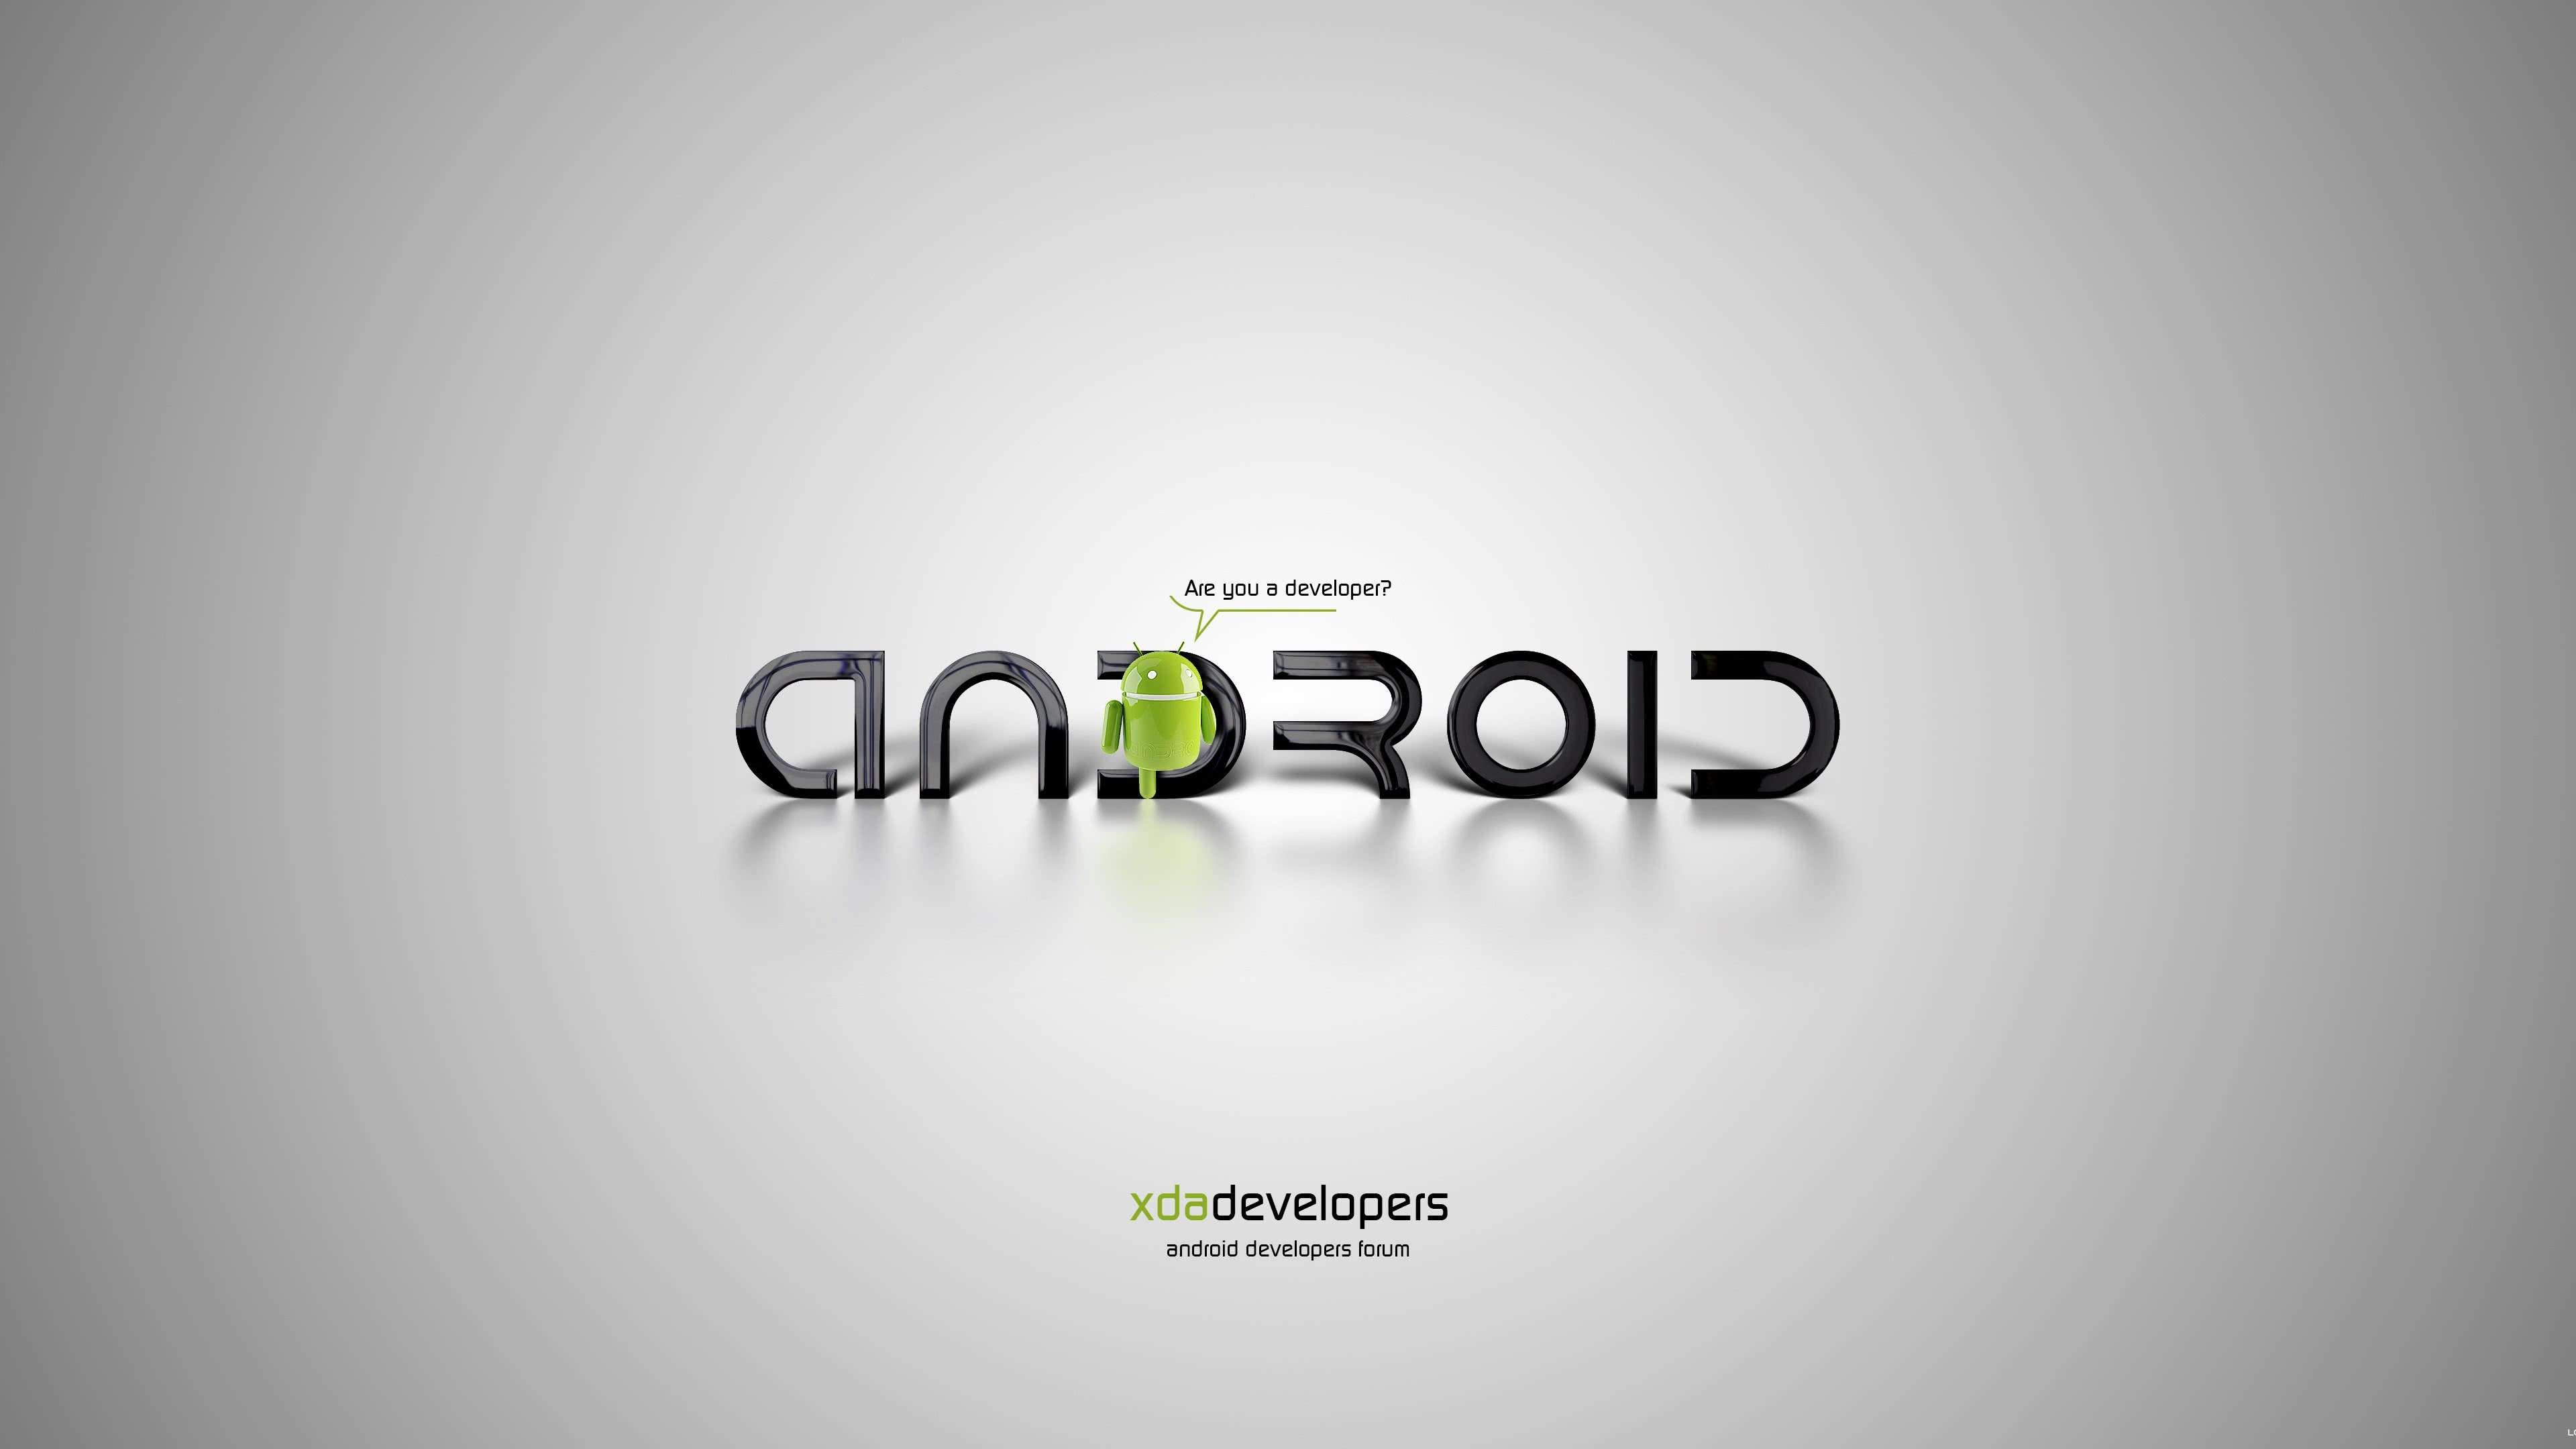 Xda Wallpaper Posted By Sarah Sellers